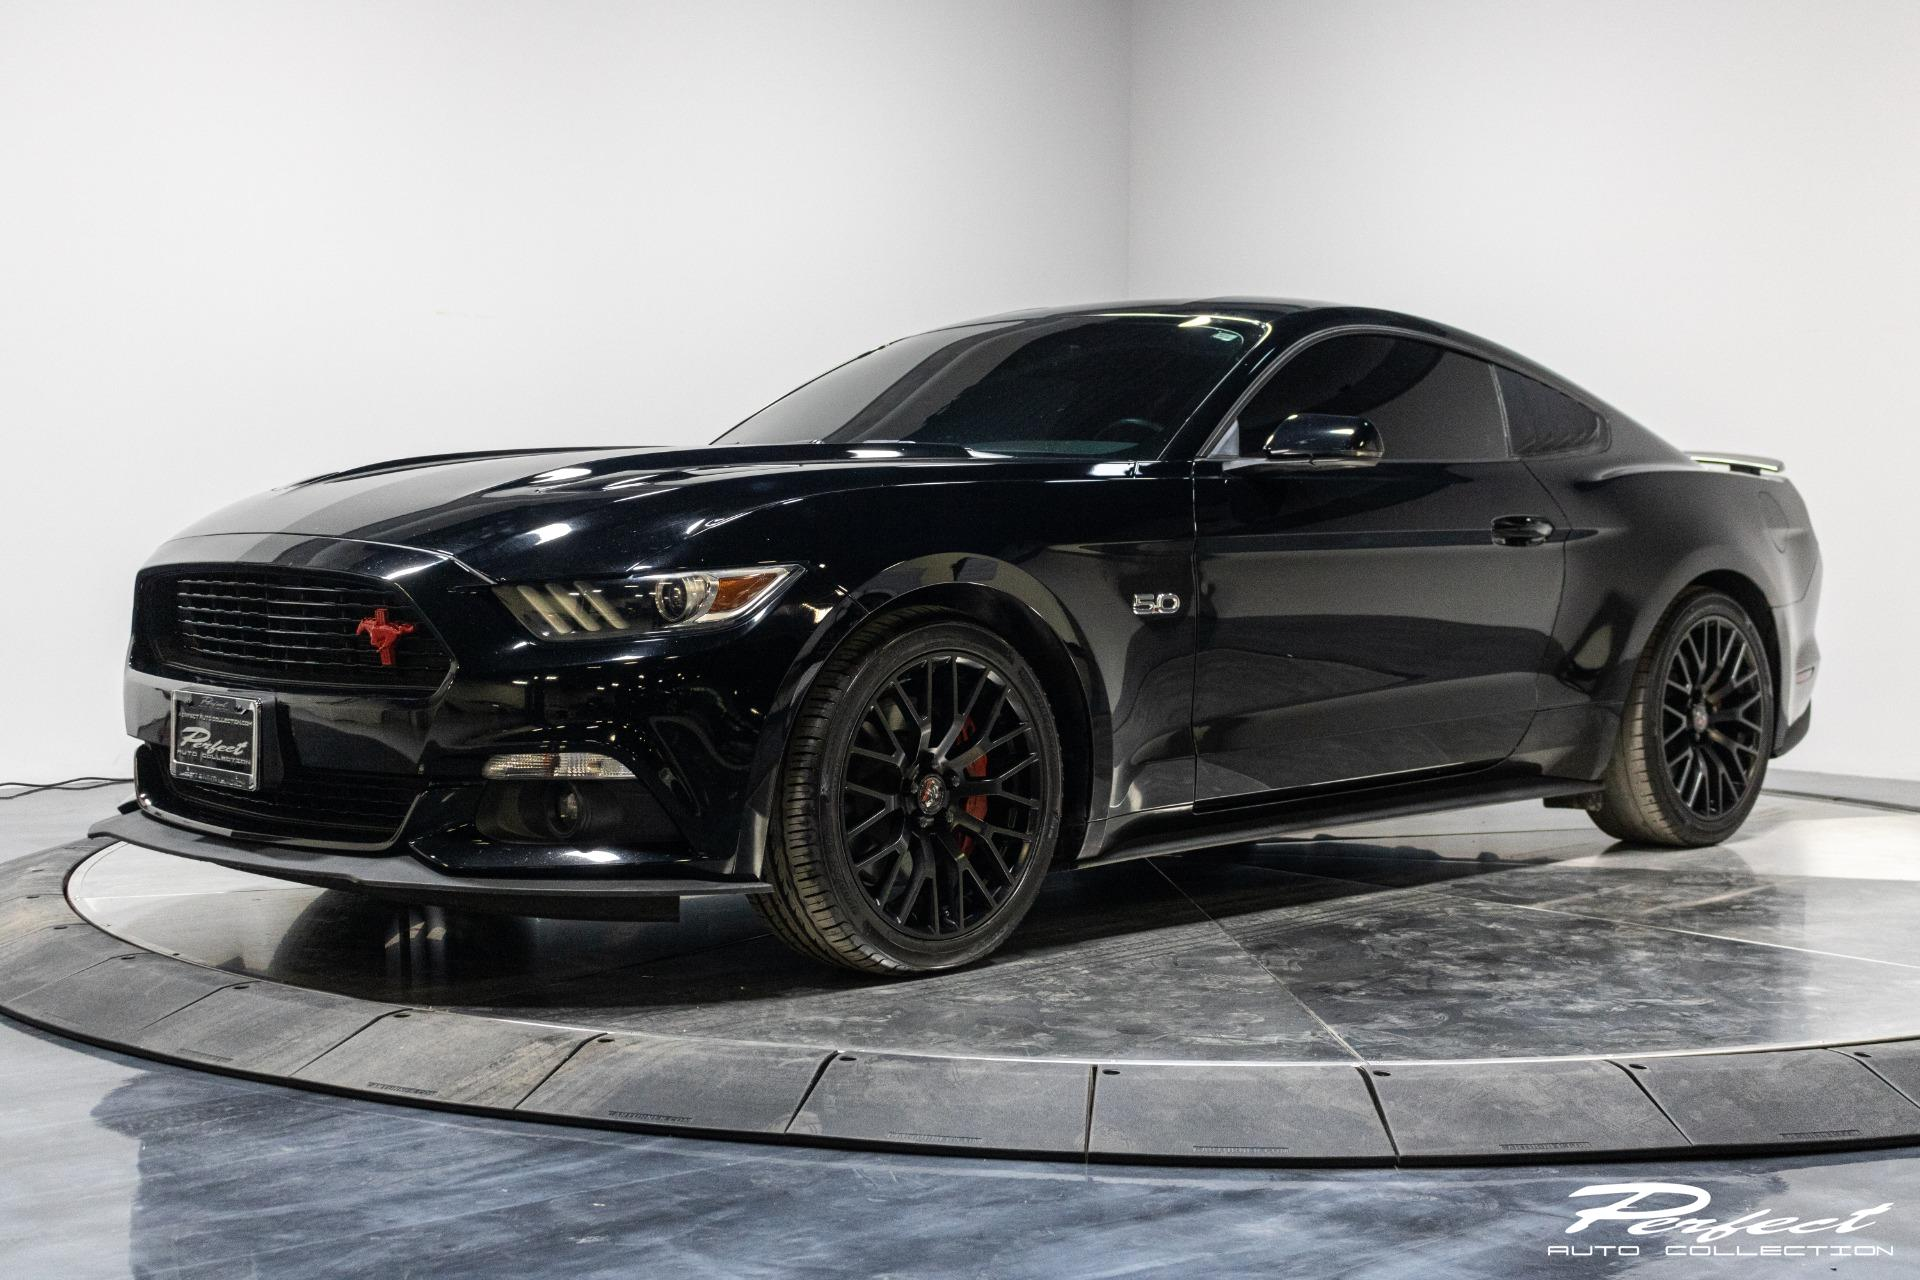 Used 2016 Ford Mustang GT California Edition for sale Sold at Perfect Auto Collection in Akron OH 44310 1